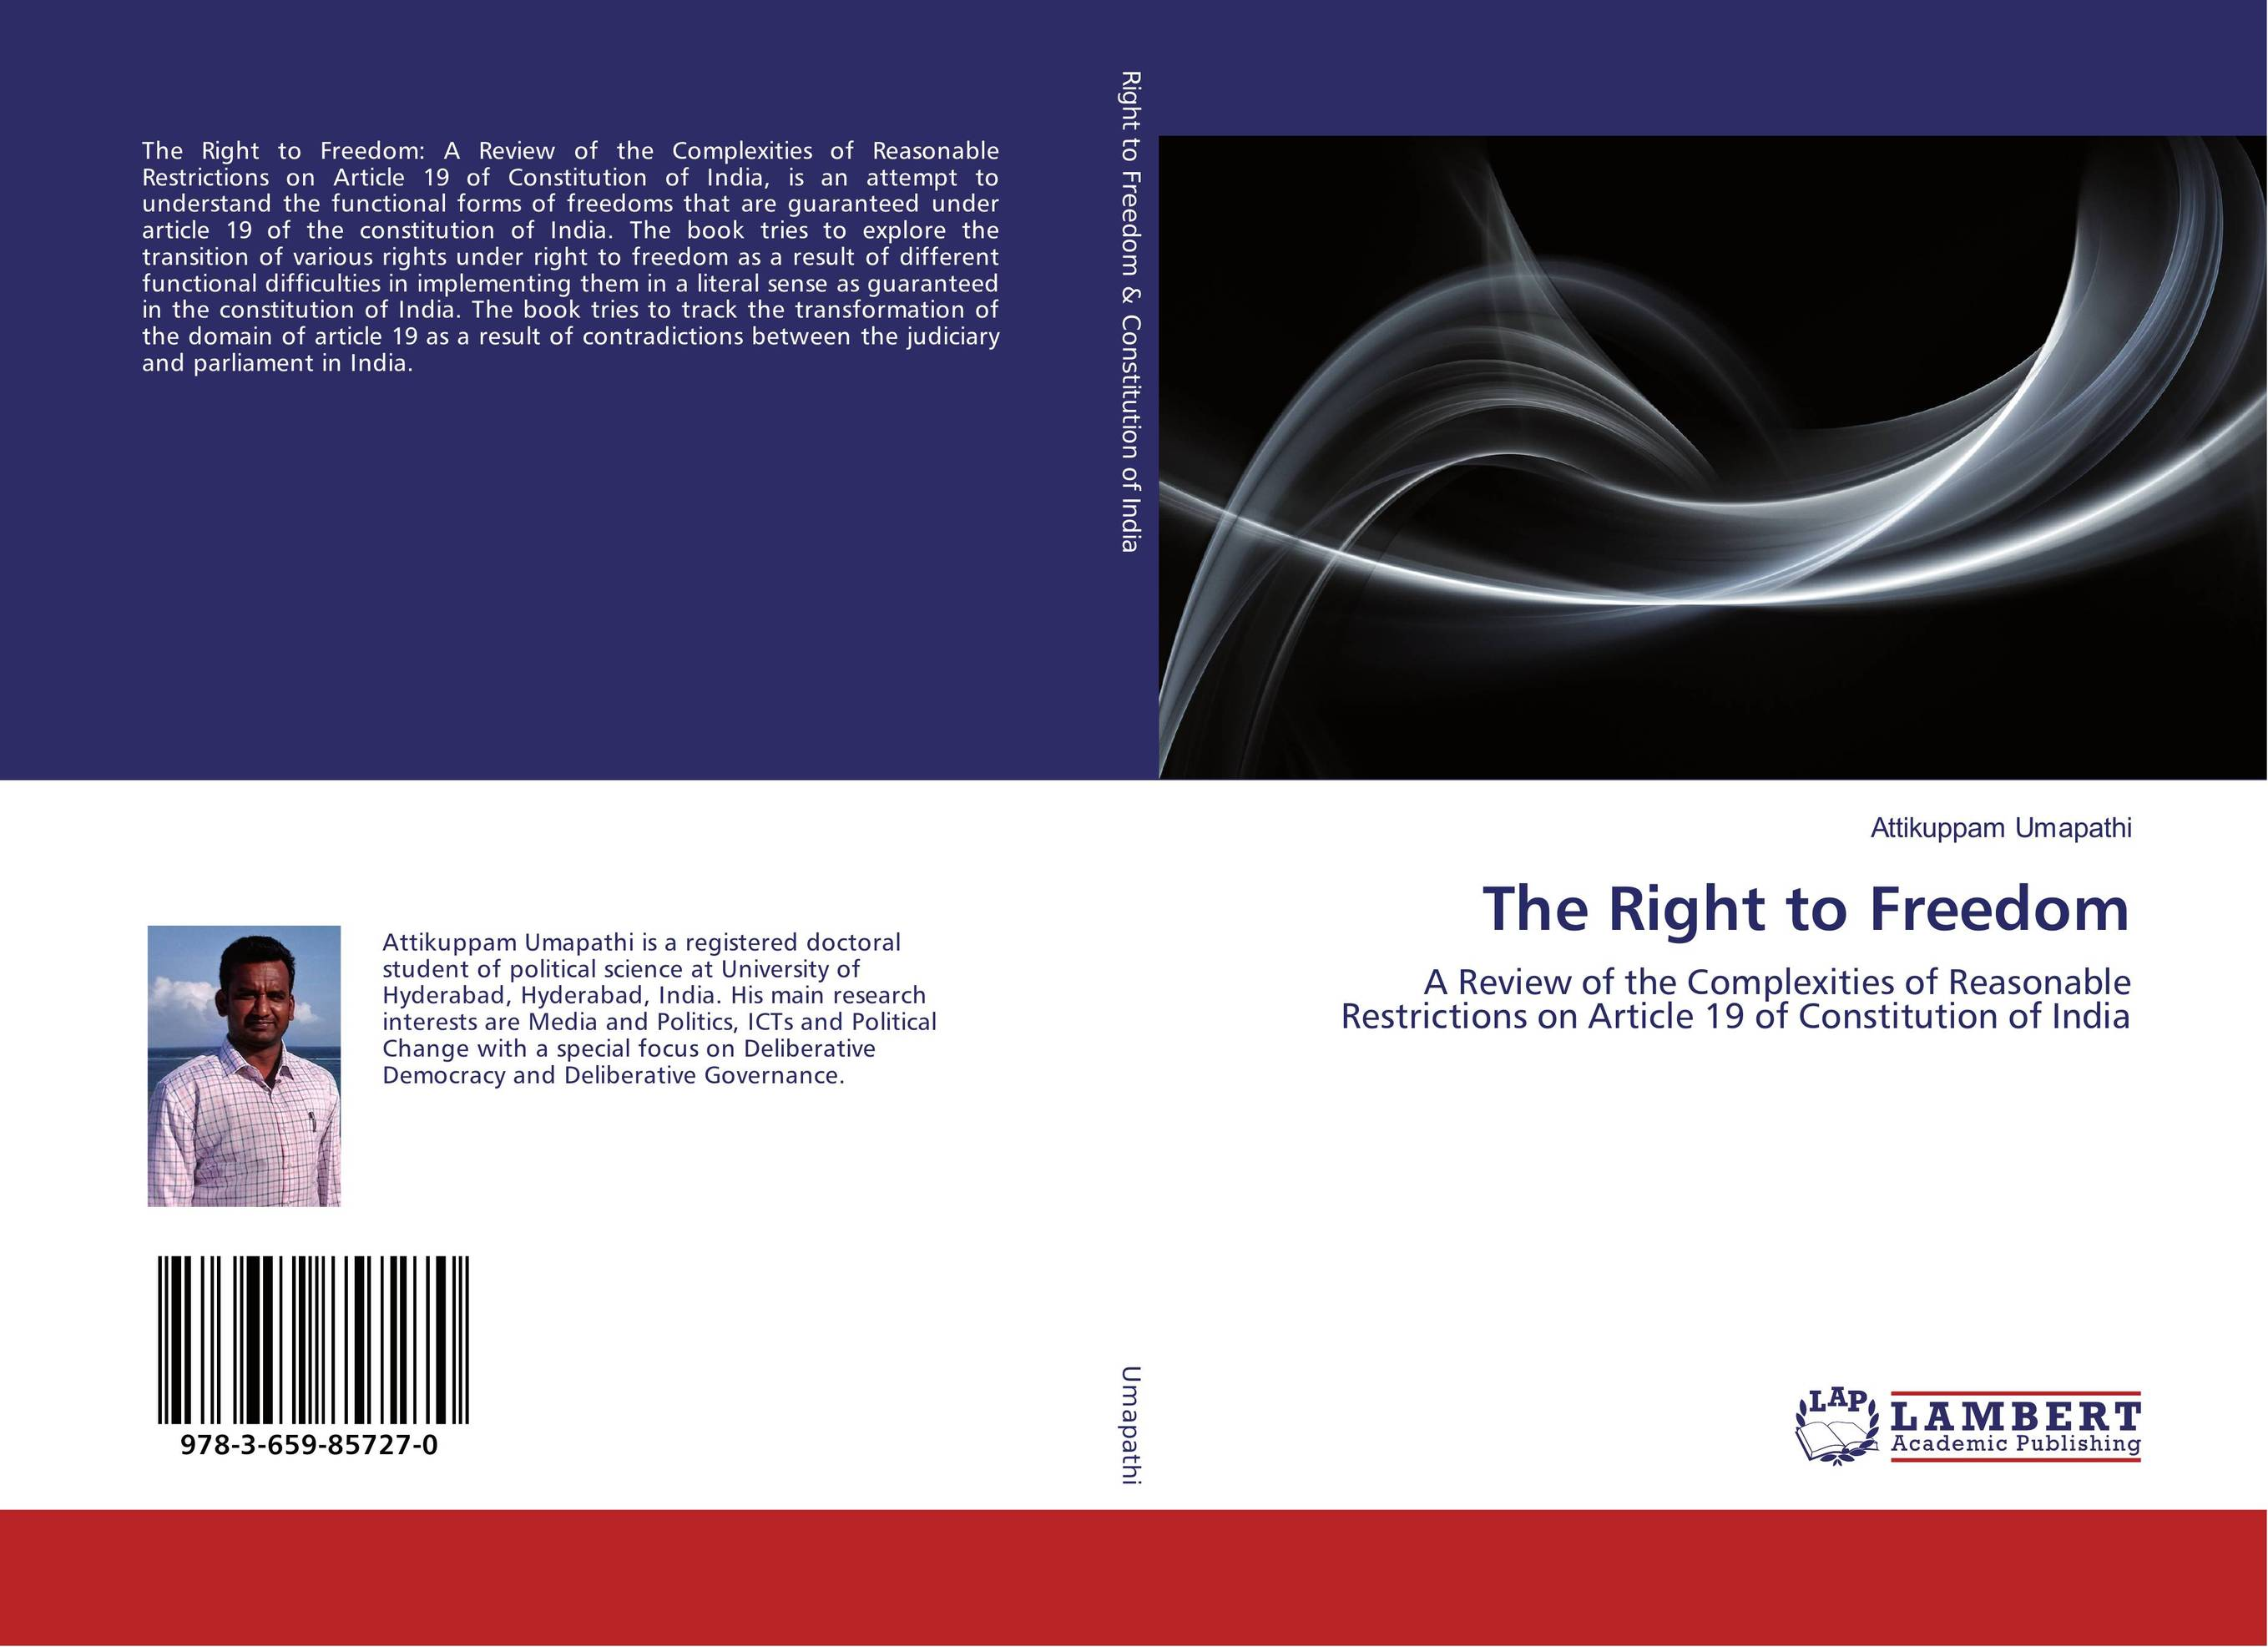 The Right to Freedom